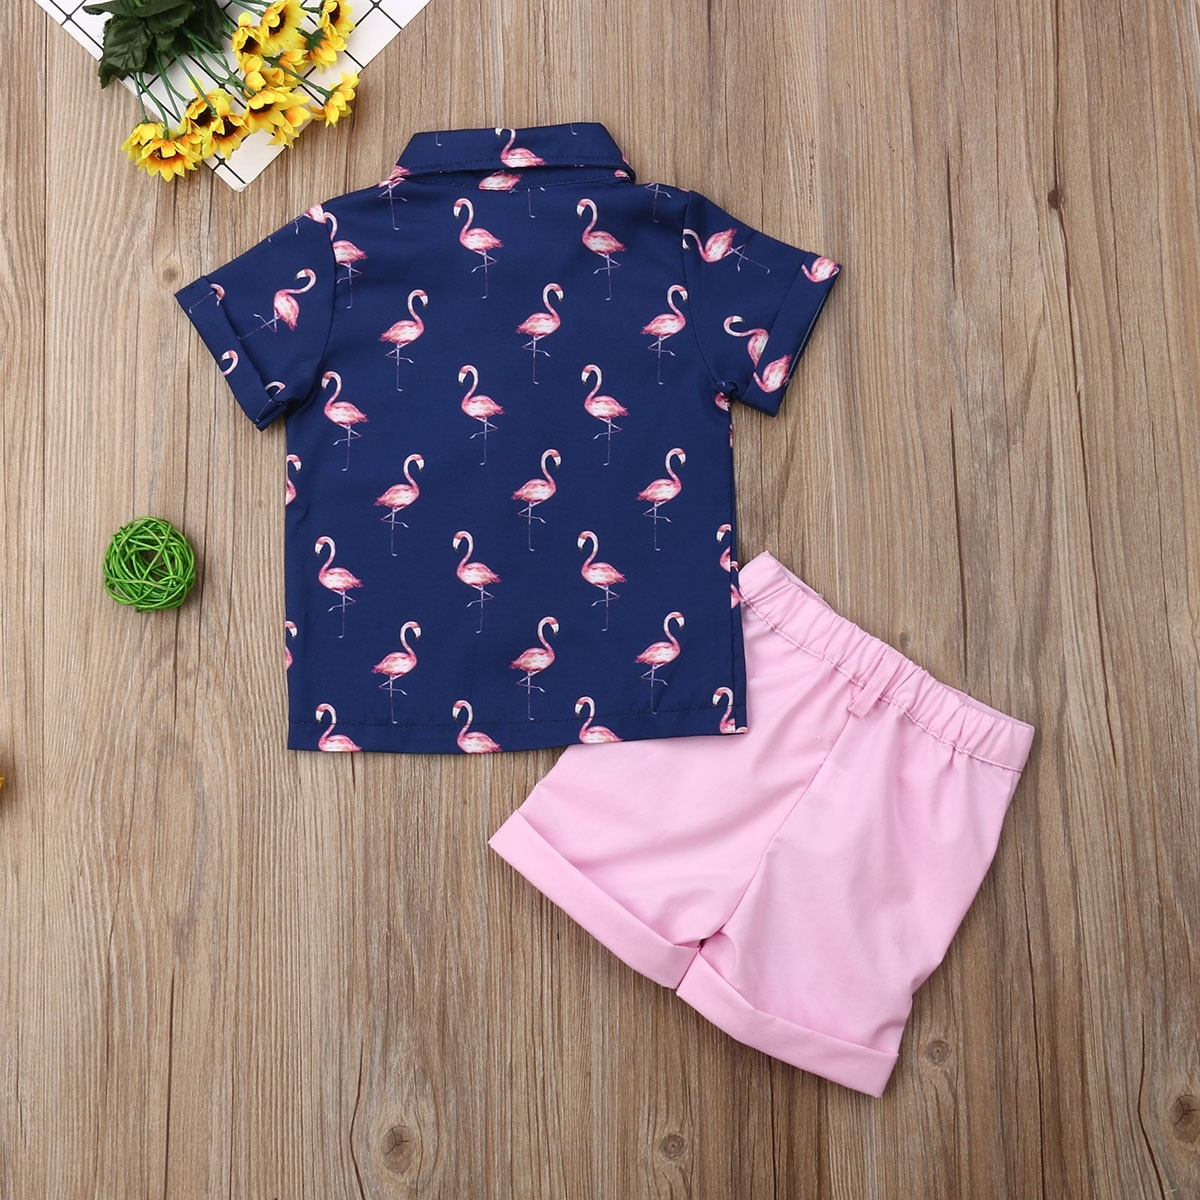 2Pcs Toddler Kids Baby Girls Sleeveless T-Shirt Flamingo Pattern Top Solid Color Shorts Outfits